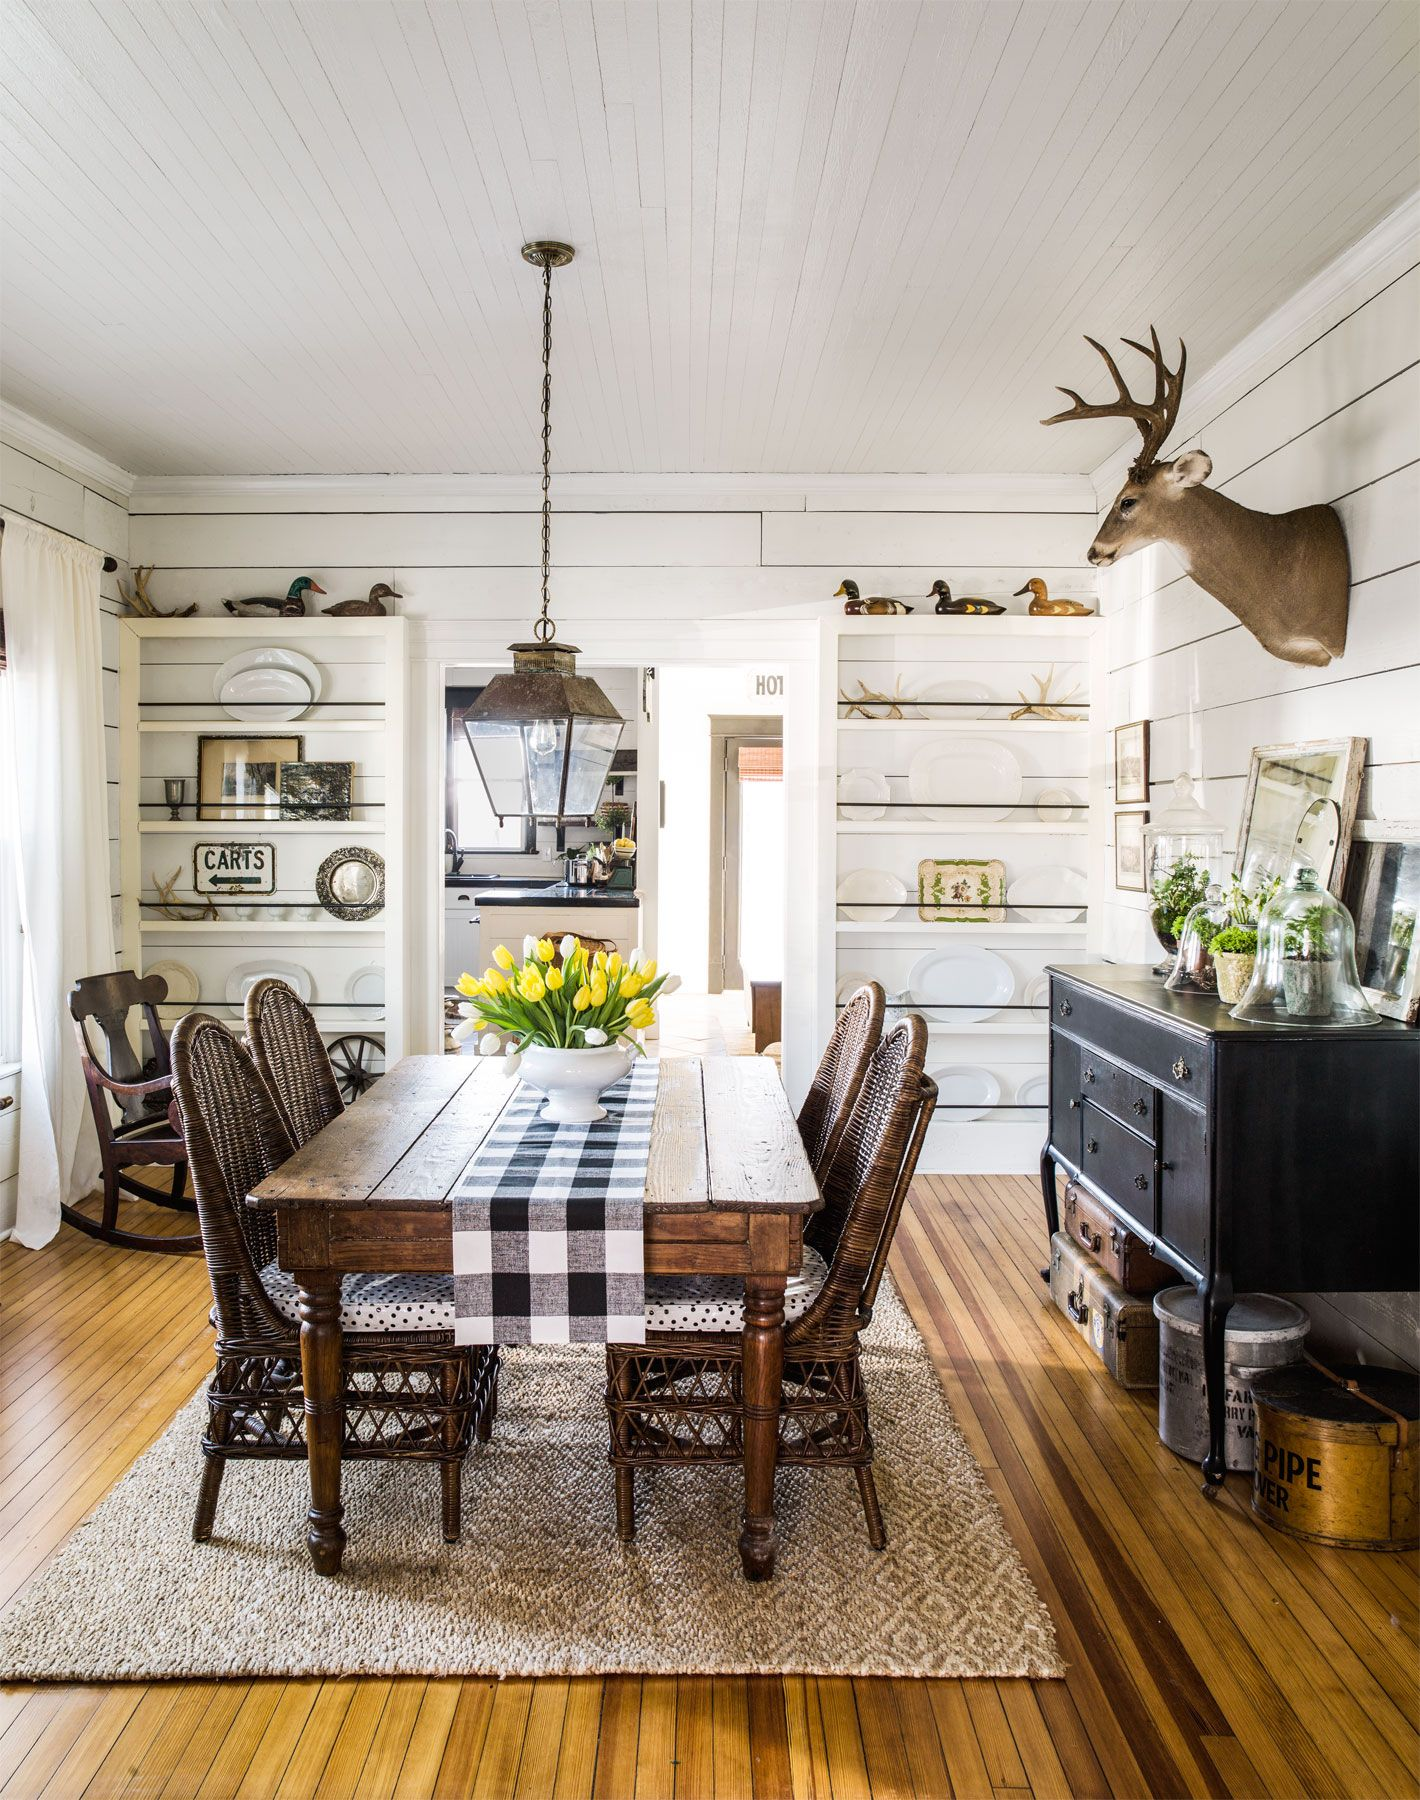 Vintage decorating ideas from a farmhouse